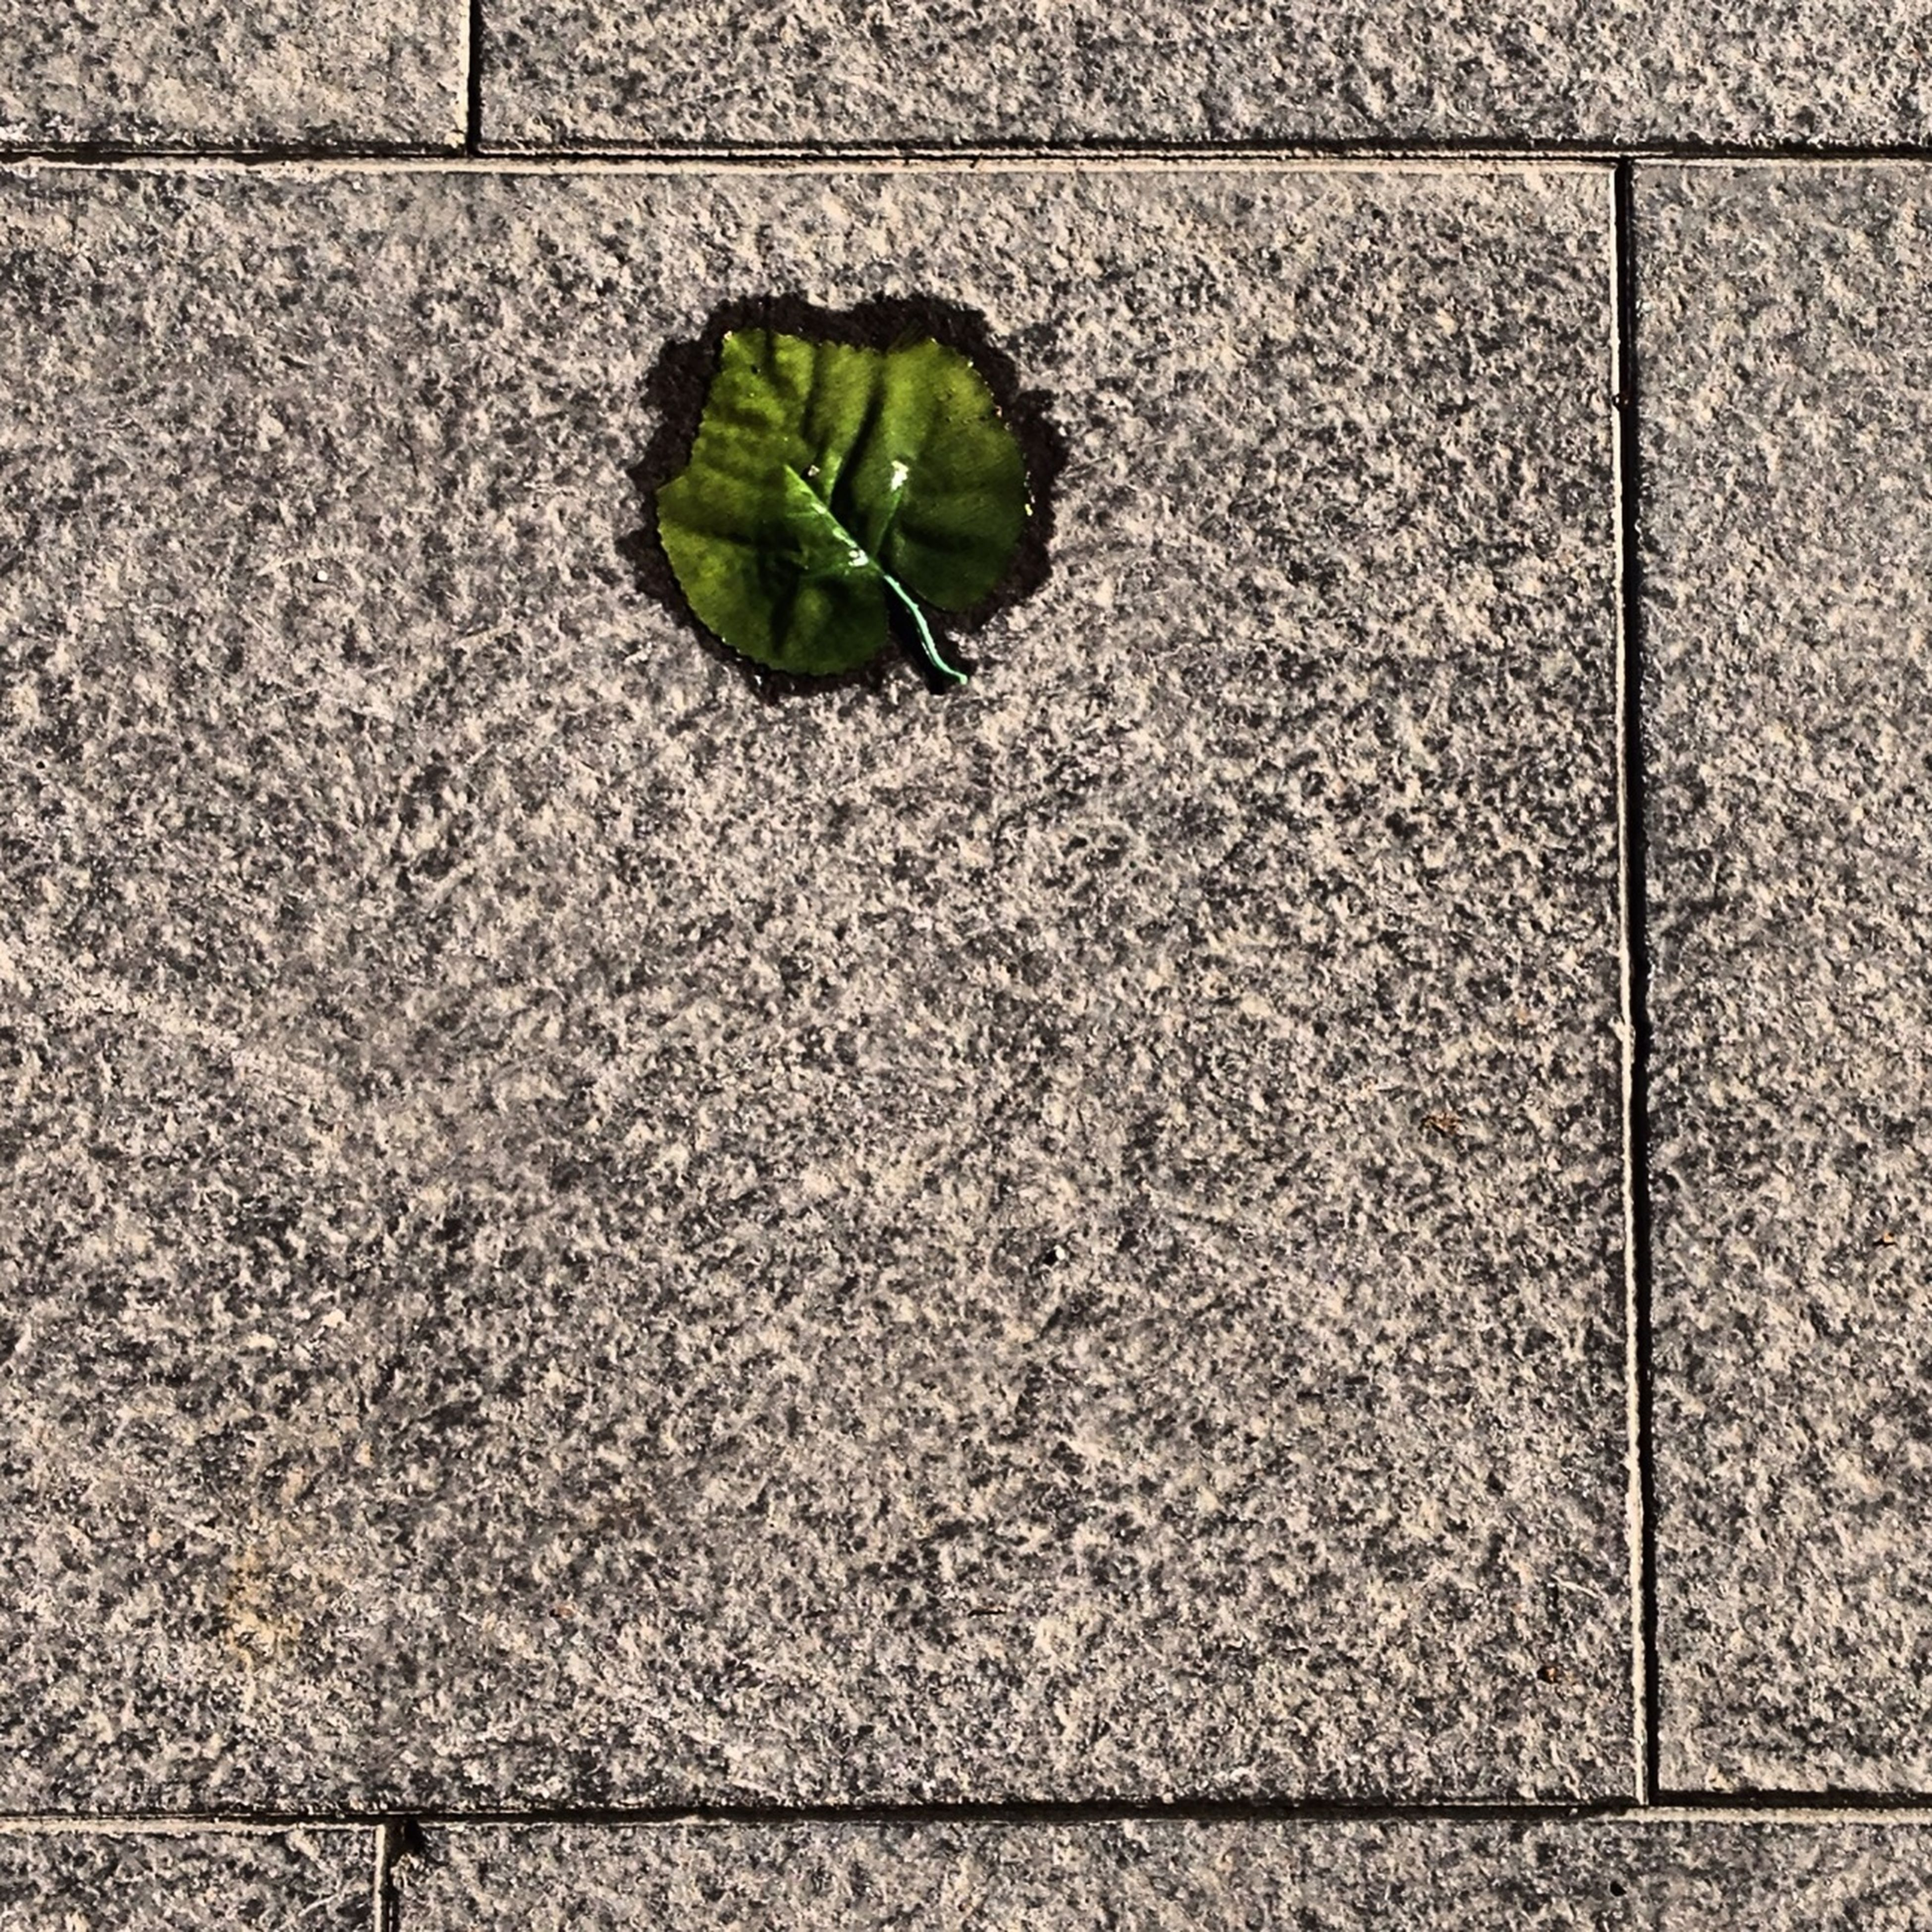 leaf, high angle view, green color, plant, growth, close-up, textured, no people, nature, full frame, day, growing, pattern, directly above, outdoors, wall - building feature, green, backgrounds, ground, paving stone